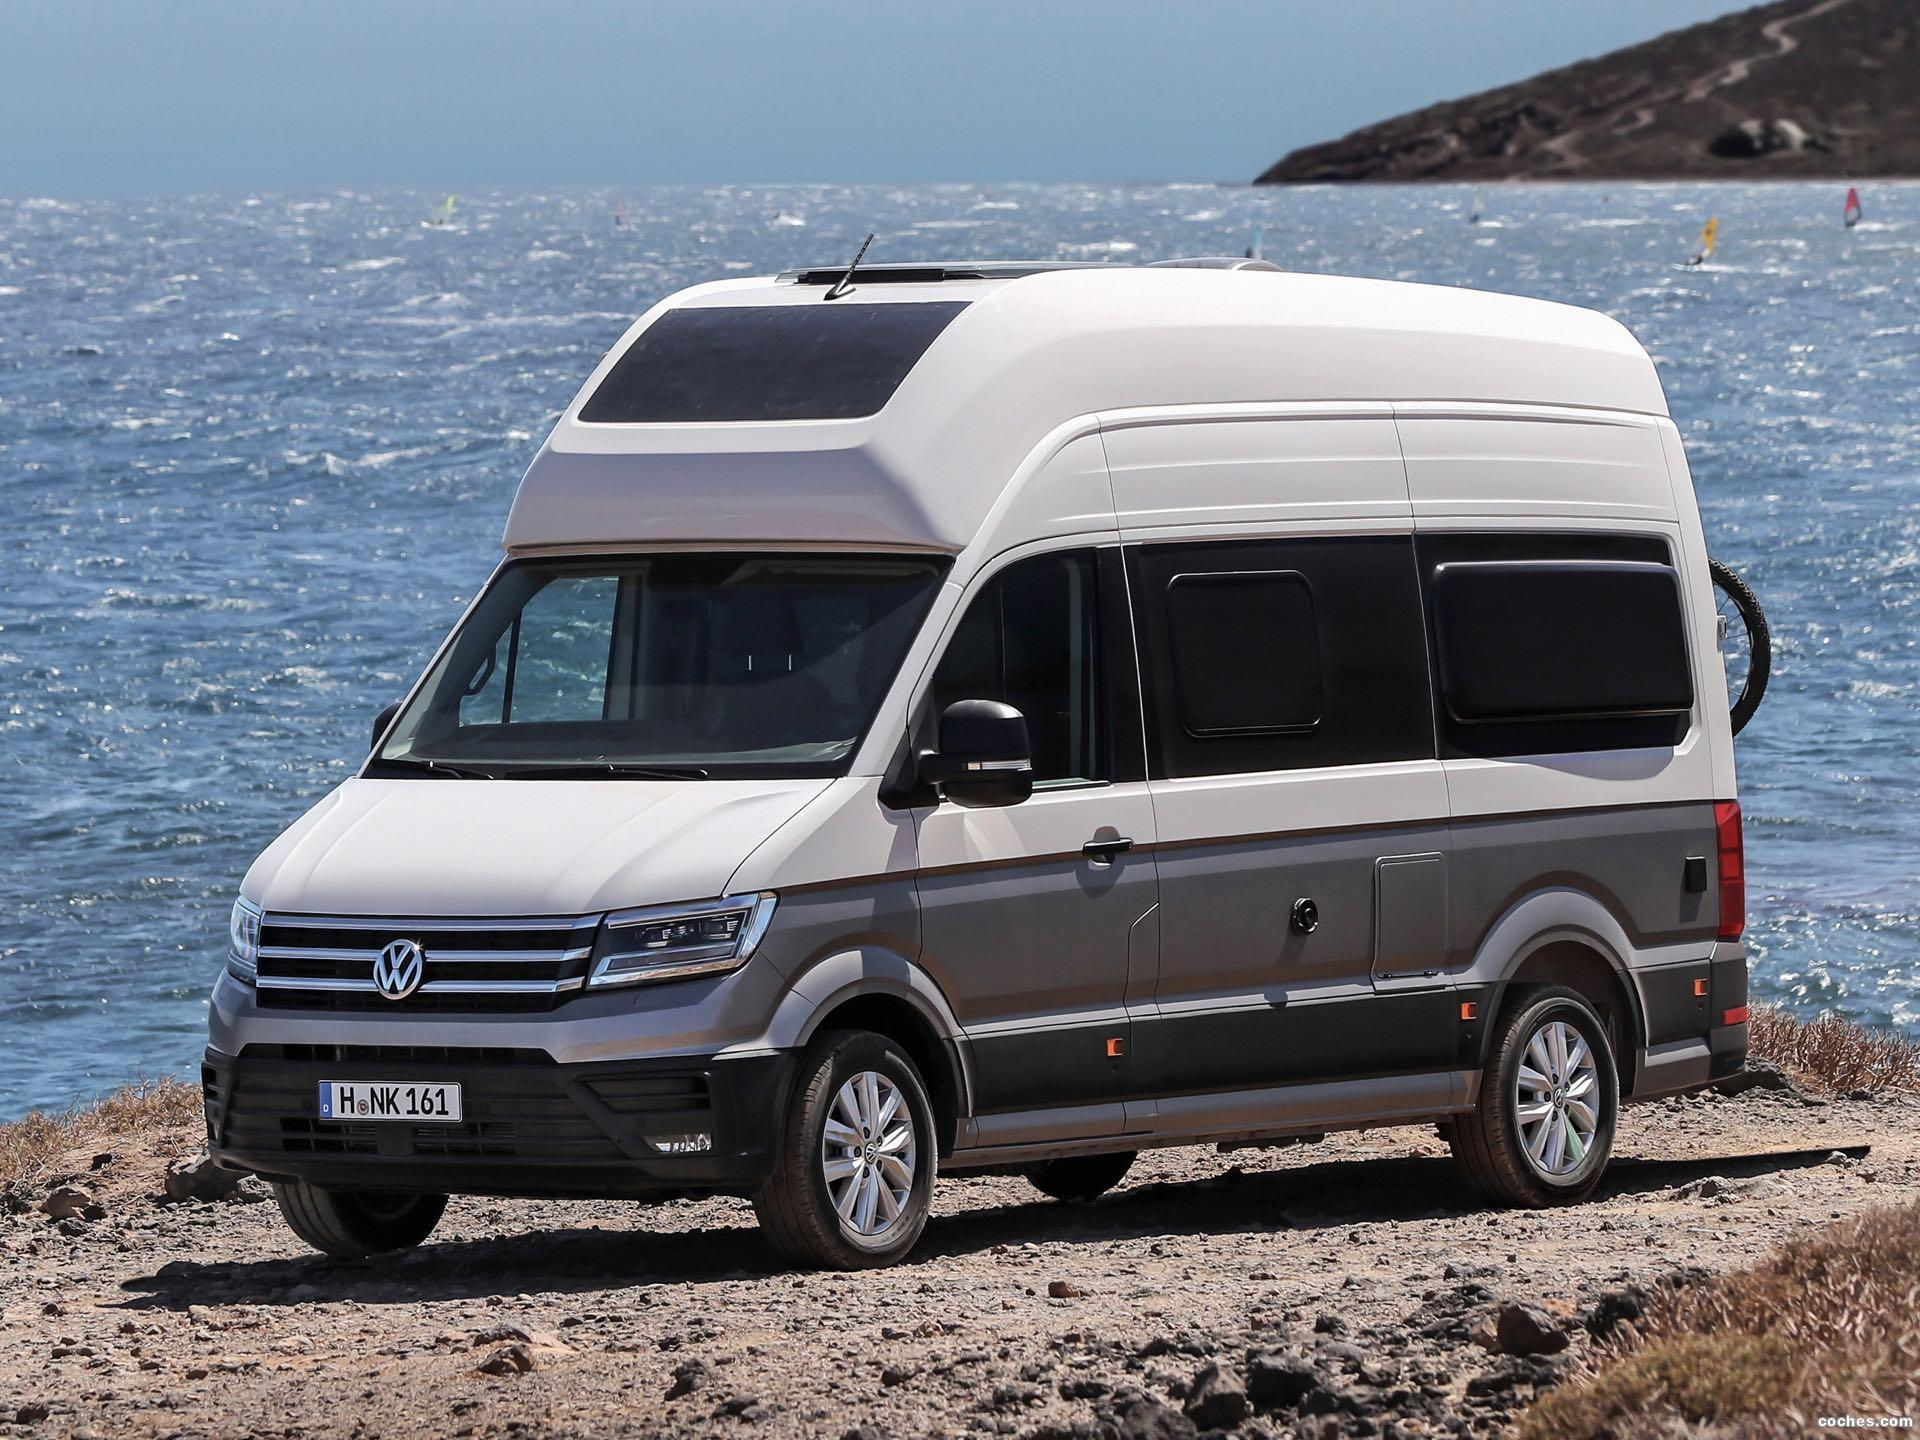 Fotos de Volkswagen Grand California 600 2019 | Foto 32